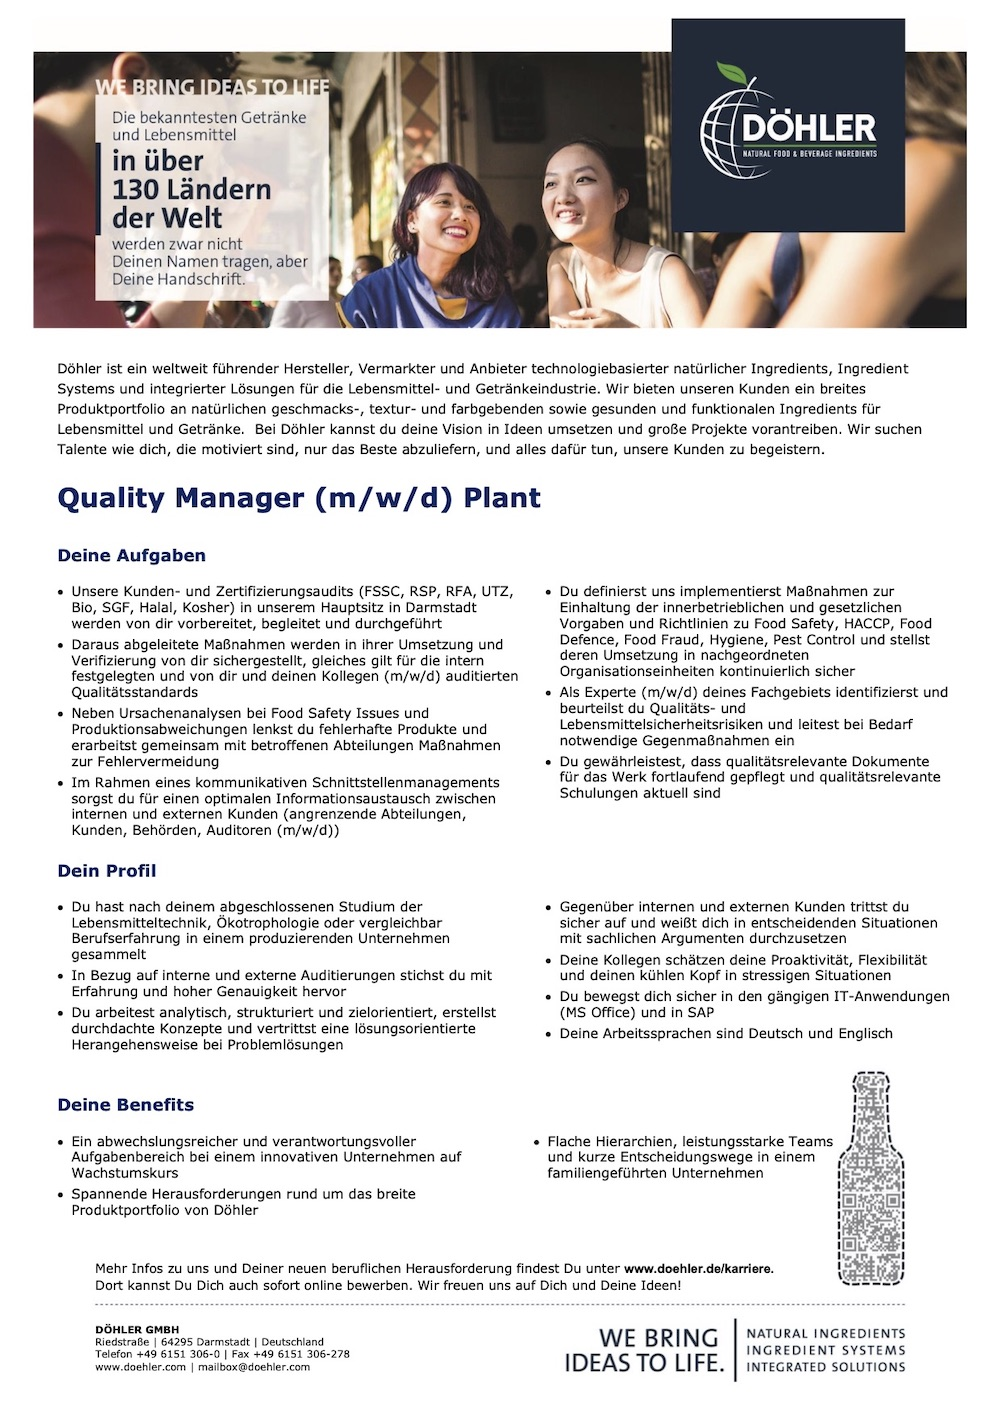 Quality Manager (m/w/d) Plant